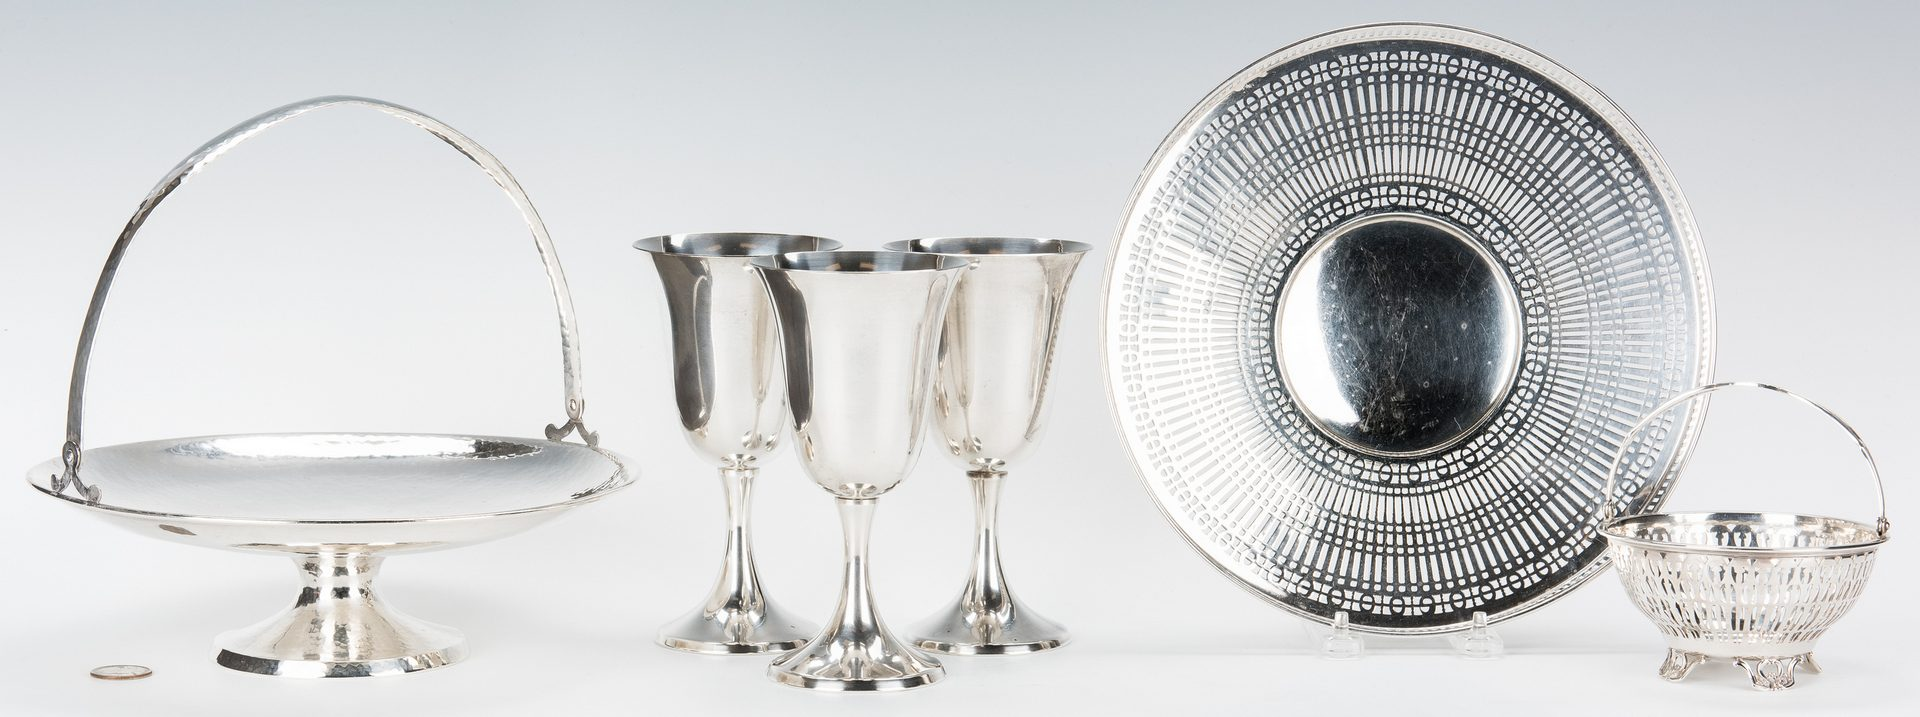 Lot 772: 6 Sterling Silver Items, incl. Hammered Compote